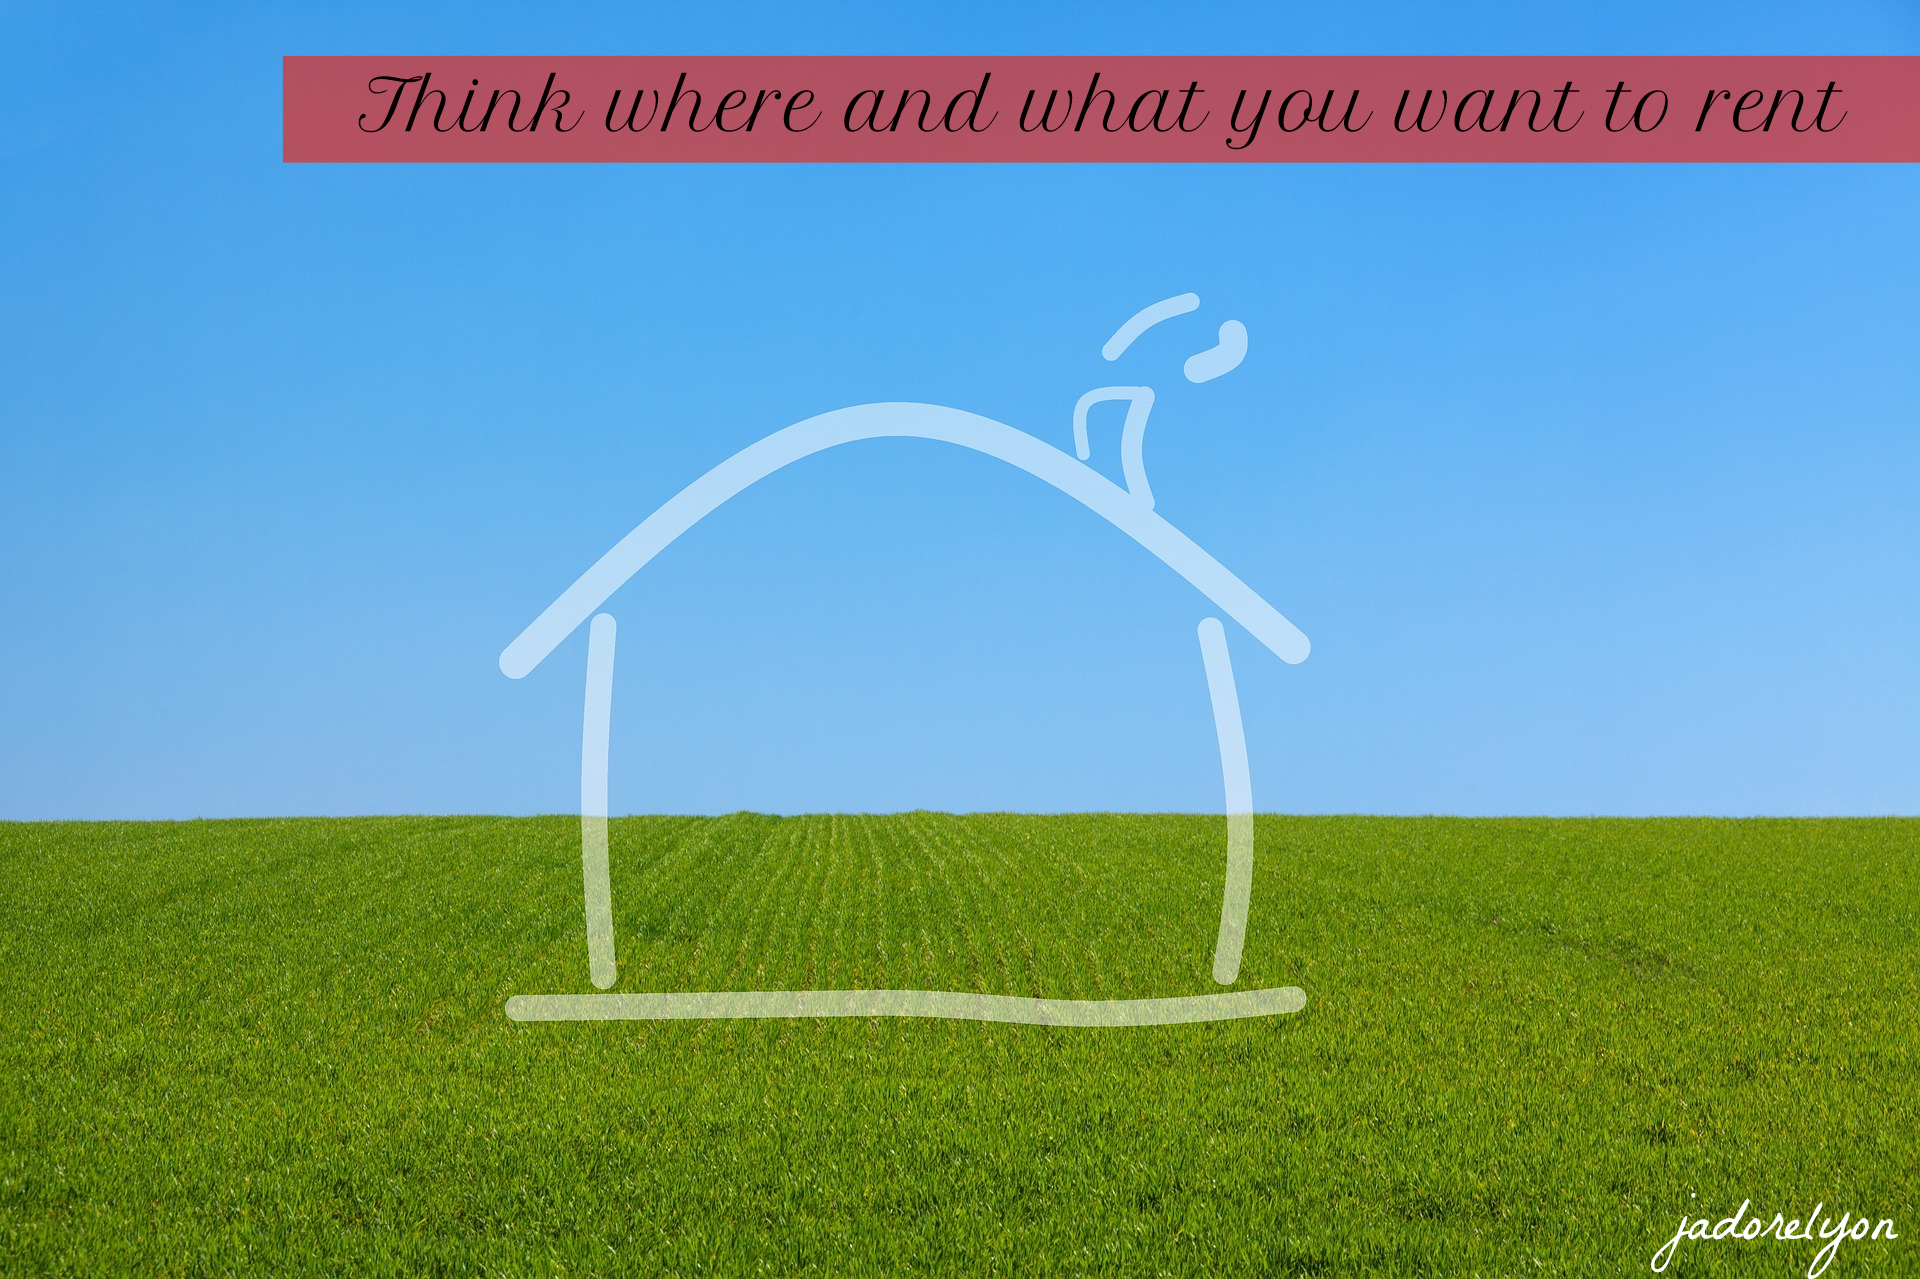 What and where to rent